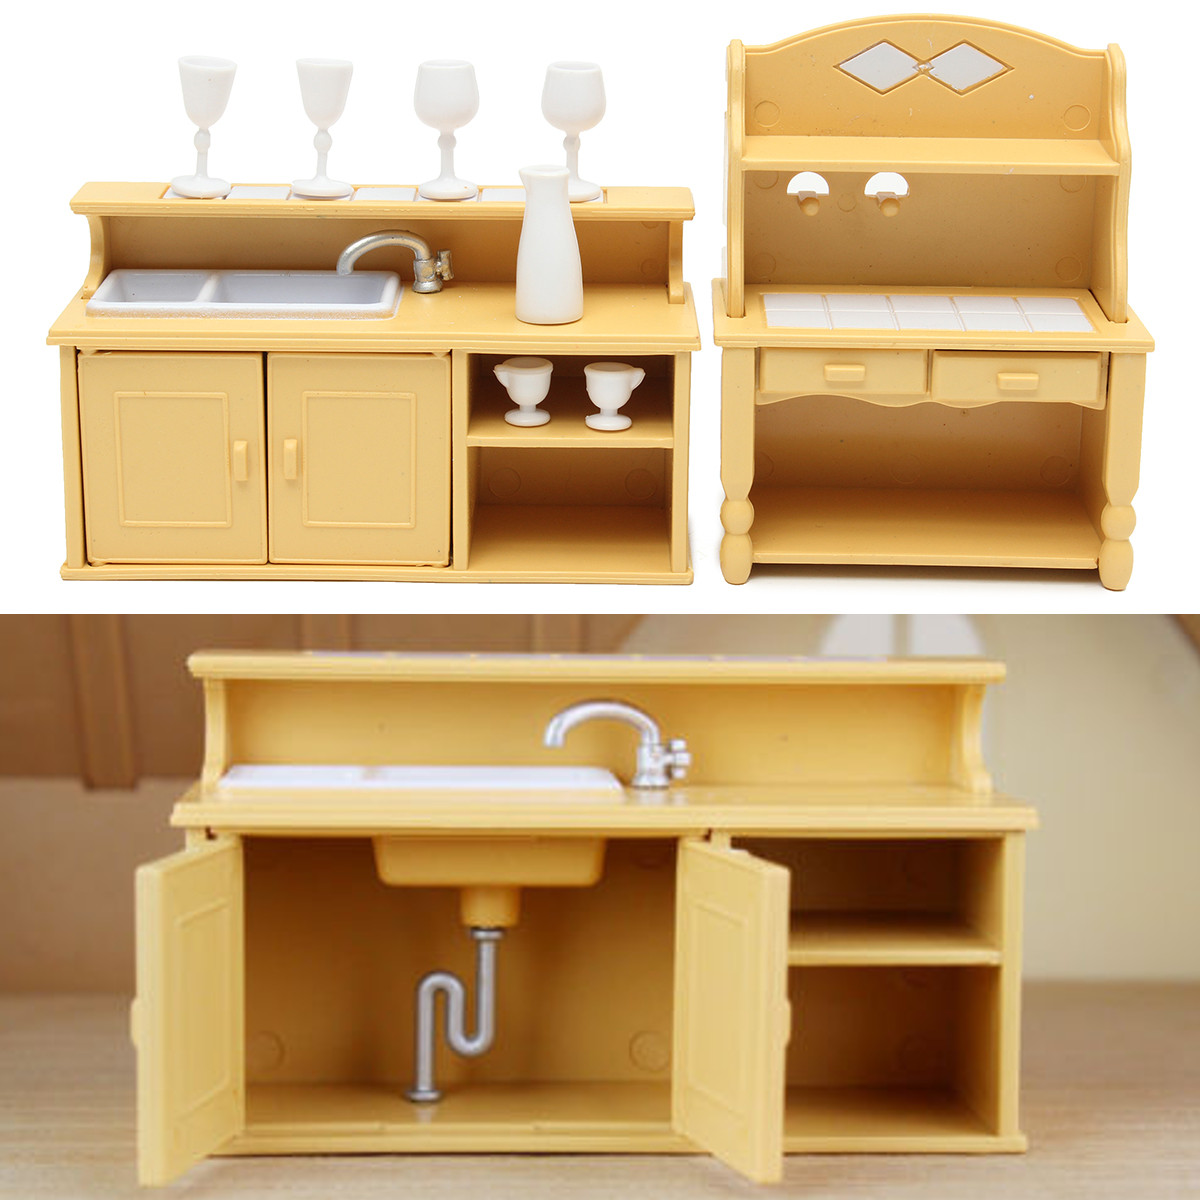 Kitchen Cabinets Set For Sylvanian Families Calico Critters Dolls SPECIAL TODAY !